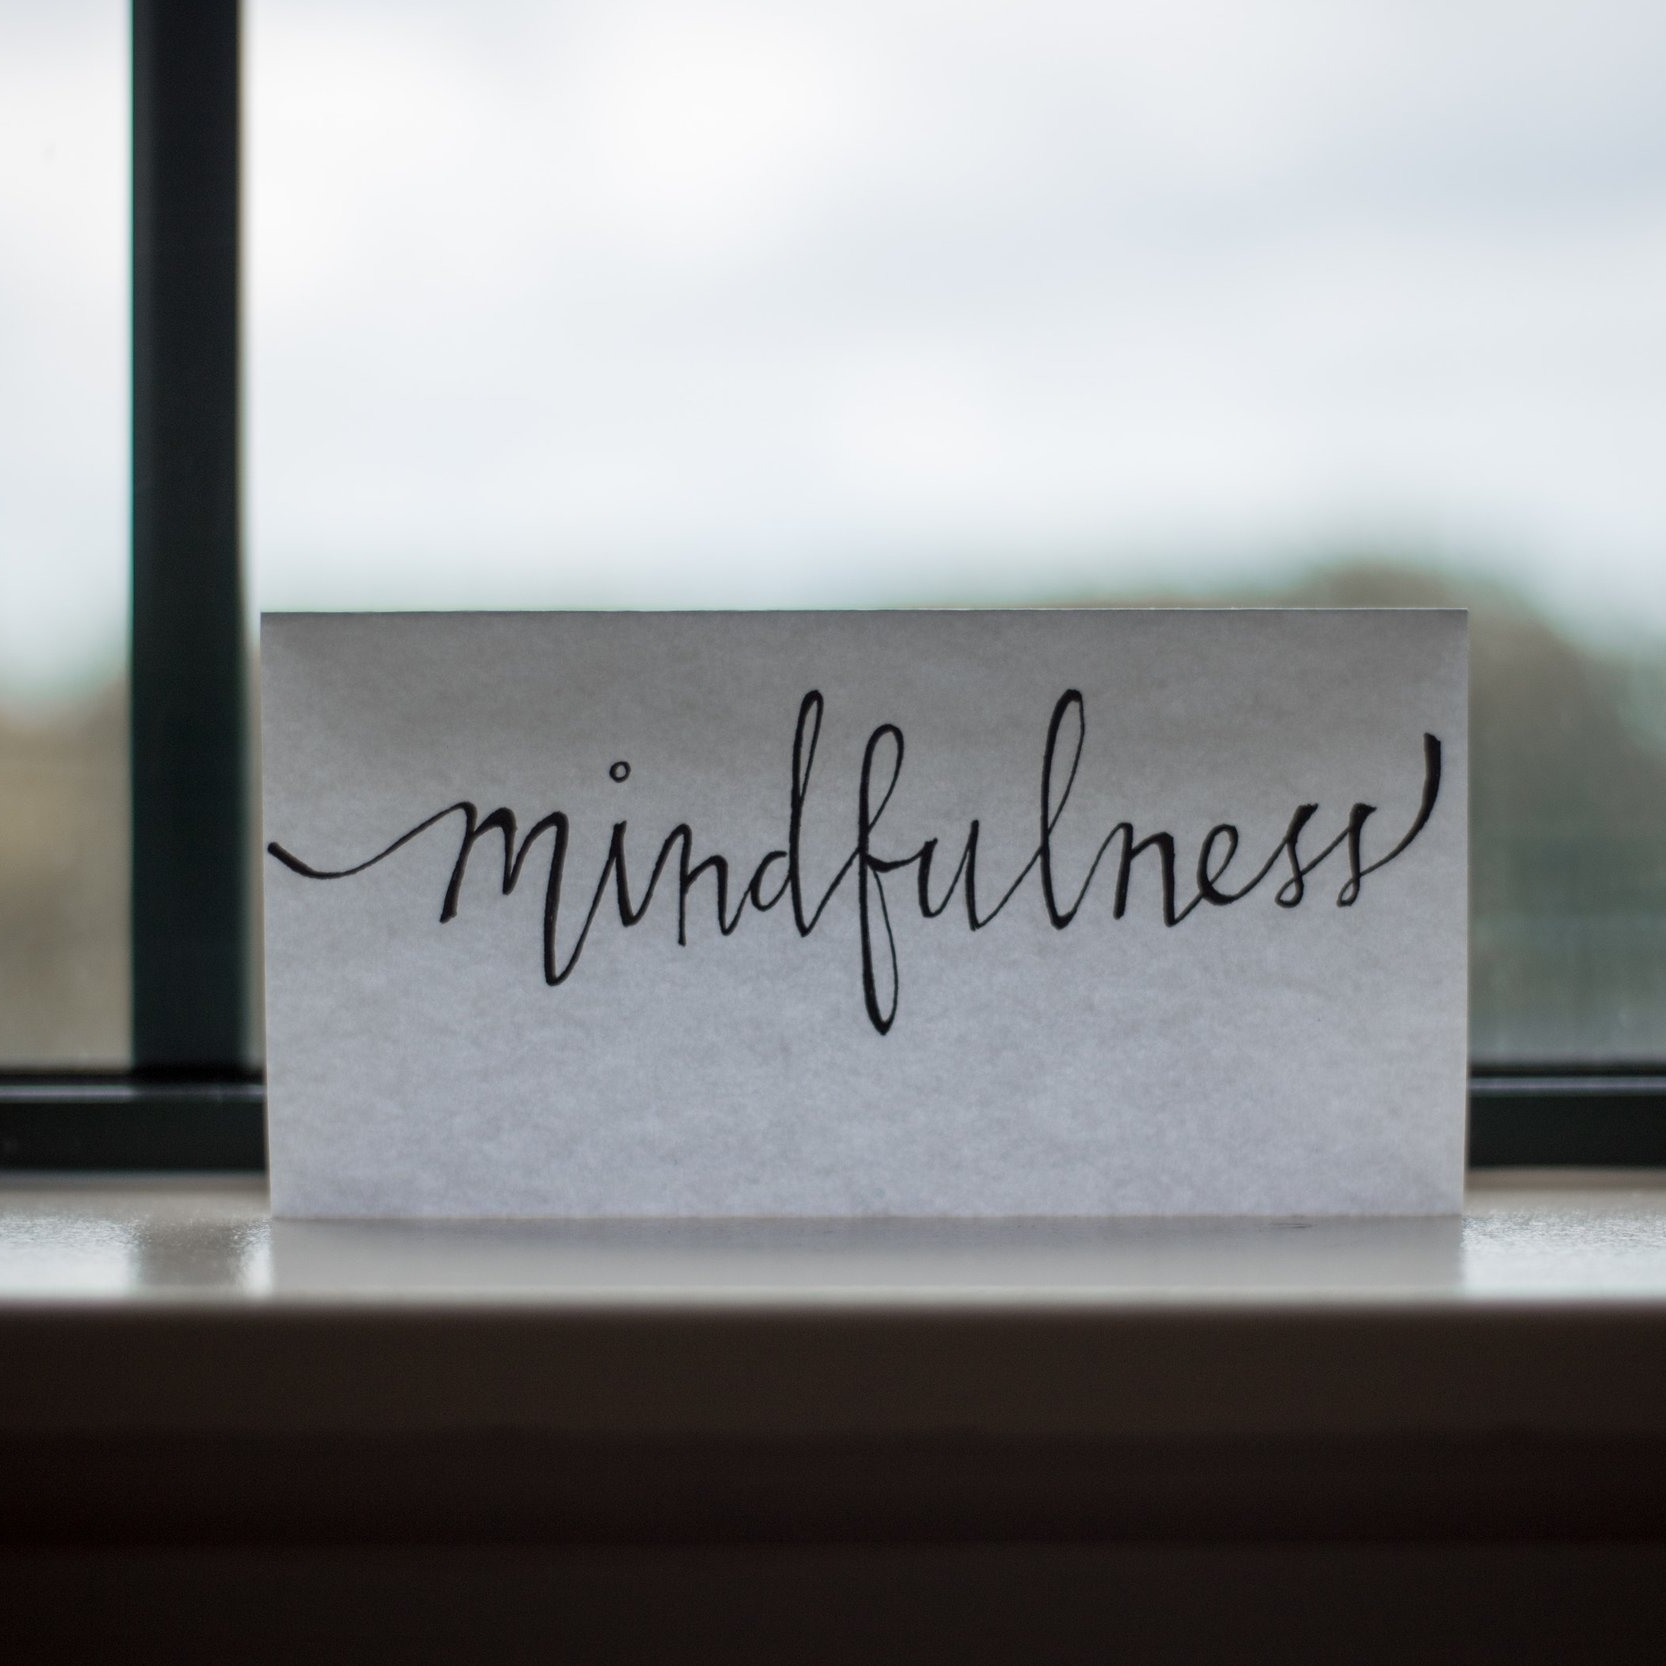 Nourishing Aliveness® Natural Weight Women's Workshop - October 5, 2019Saturday from 11:30 am - 2:30 pmChestnut Hill, PAJoin us for a taste of mindfulness with ancient practices that are supported by current research in neuroscience, psychology, and mindfulness.Use the Mindful Process of KAR-ing® to tune into your needs and wants and to discern what is true about diets, weight, and health.